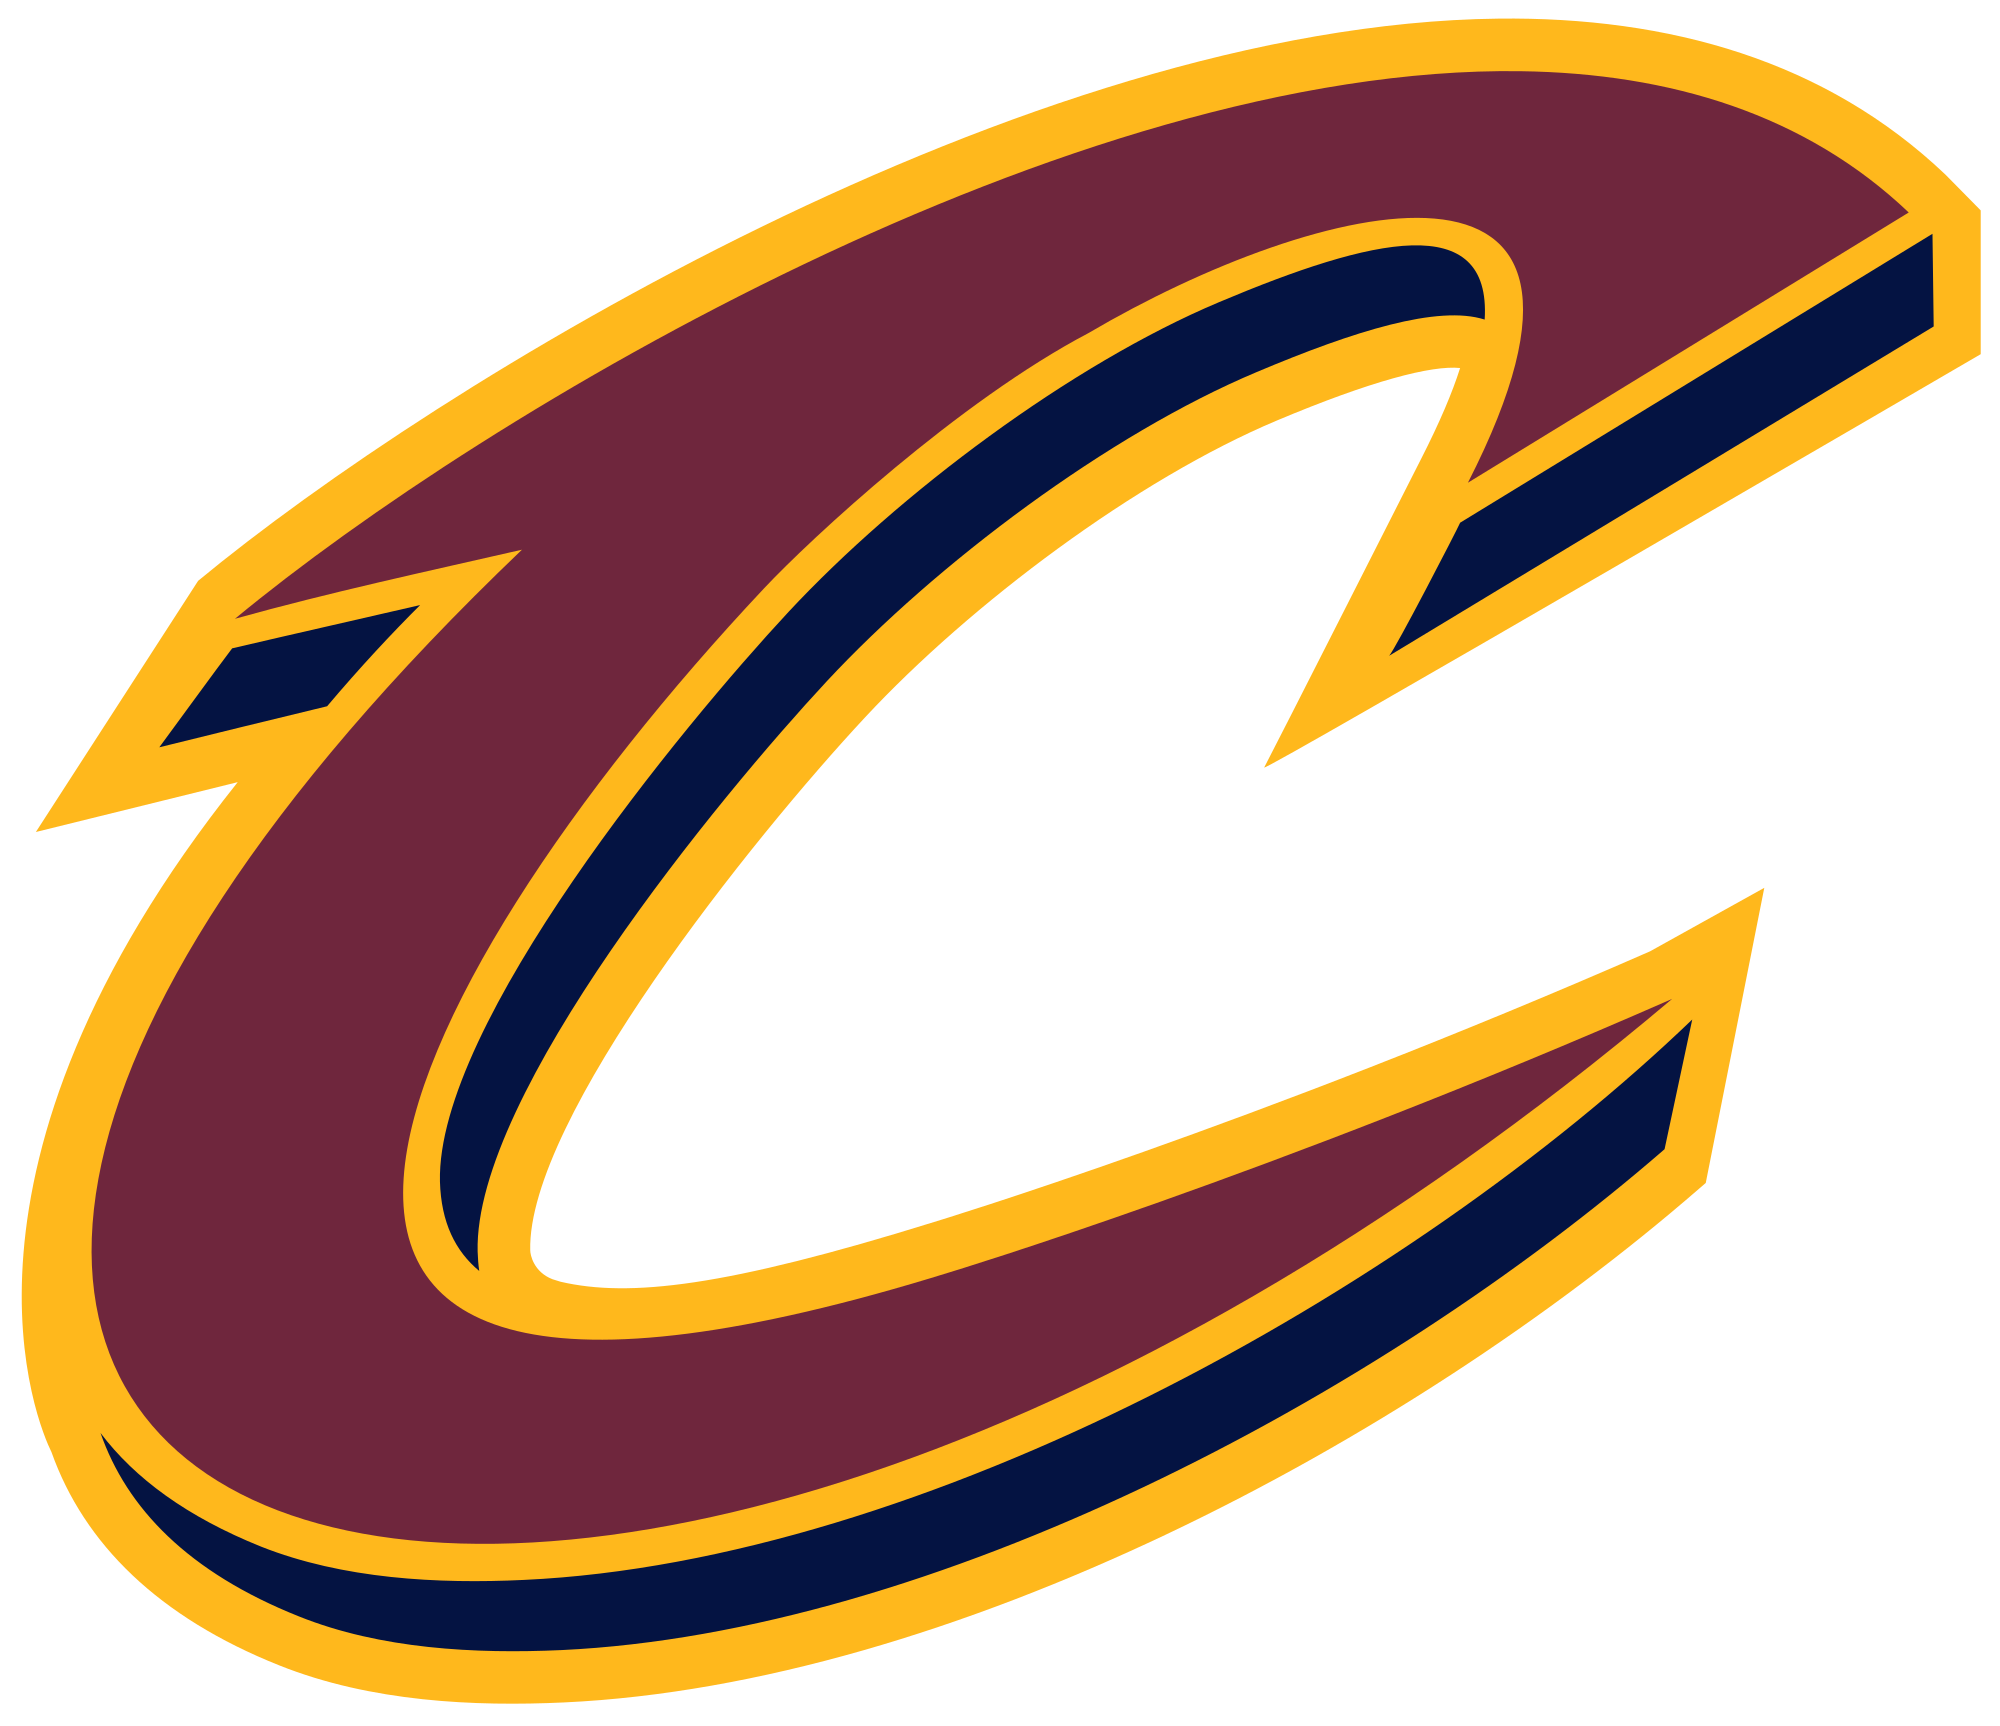 Cavs logo png. File cleveland cavaliers secondary